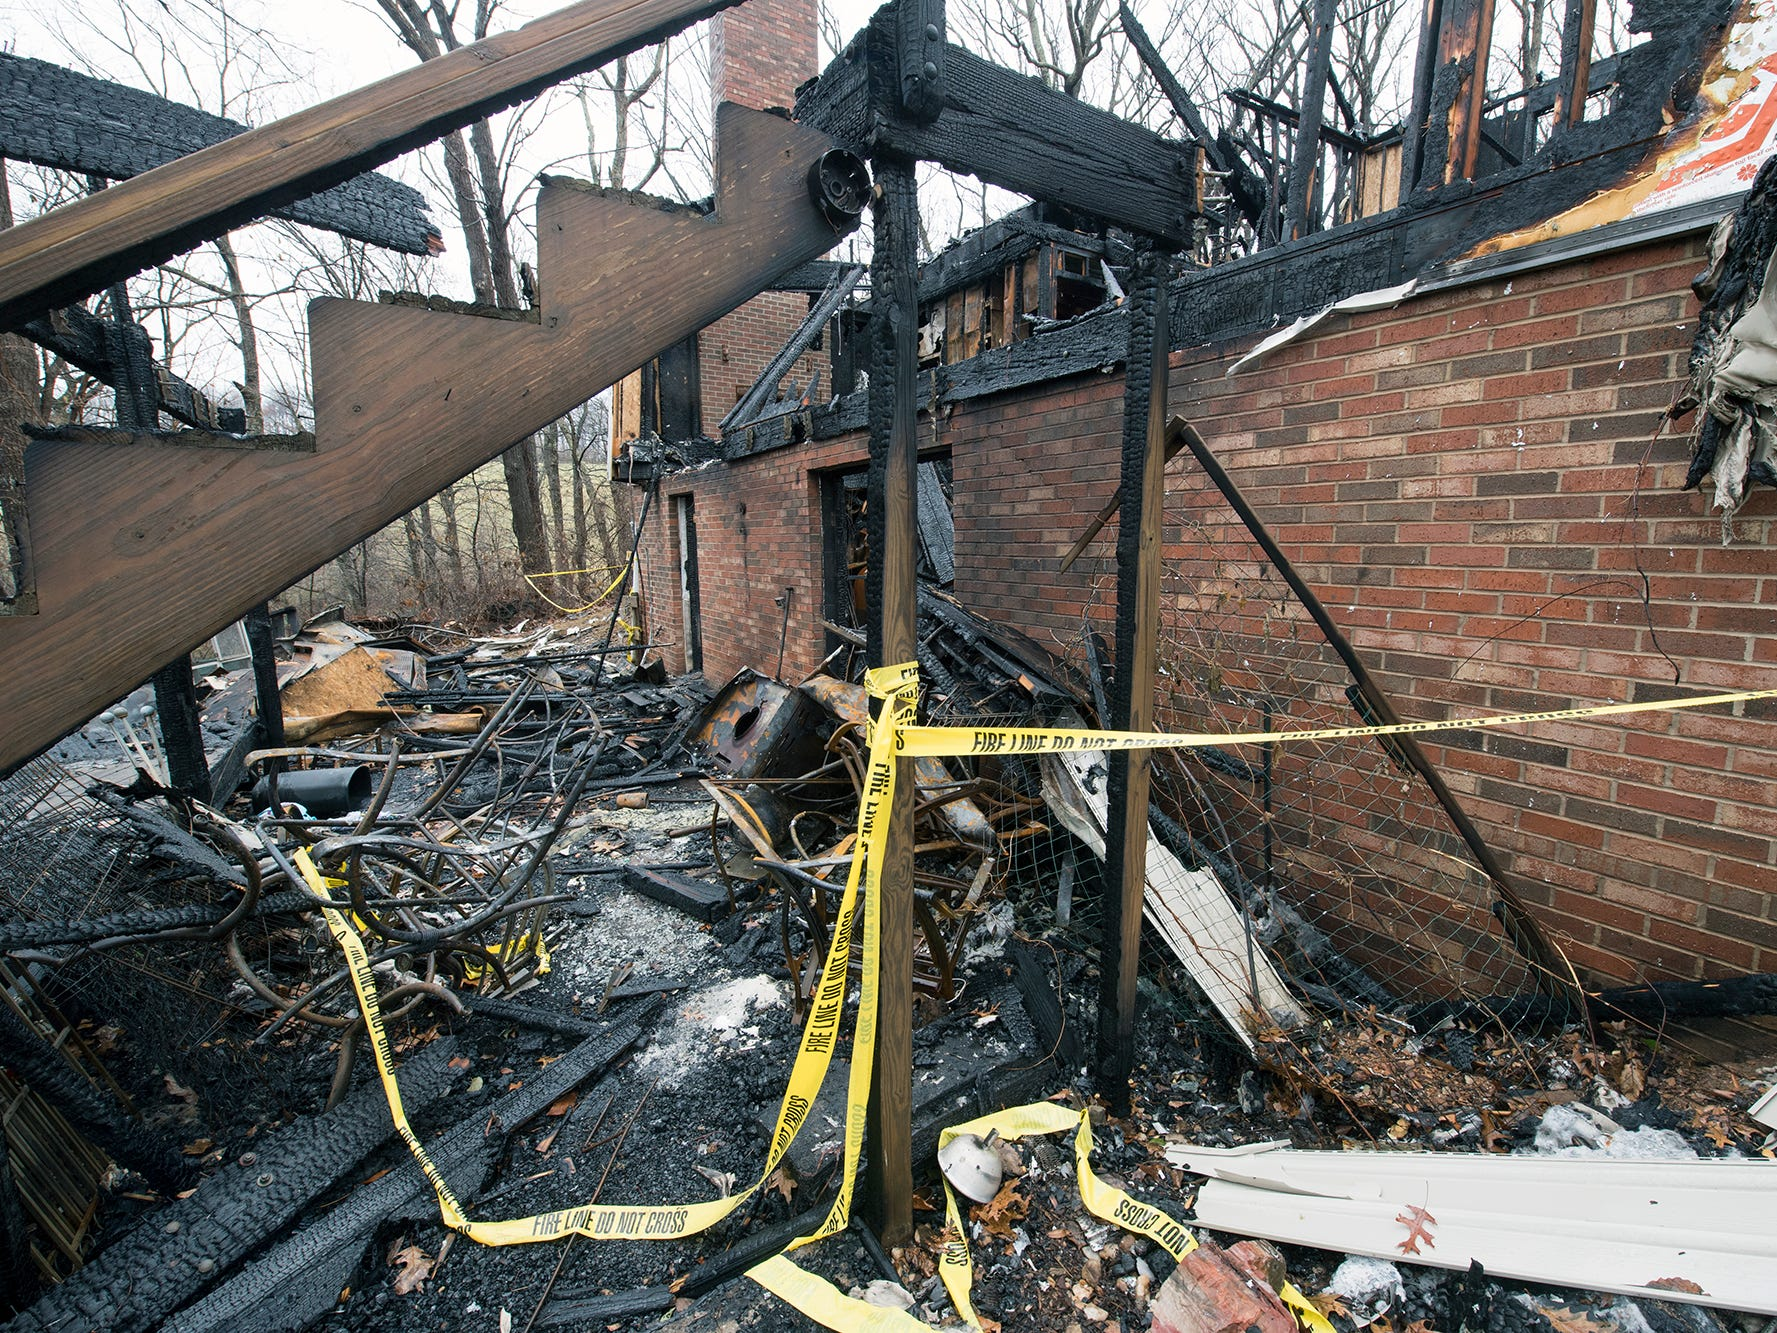 The deck on the back of the home is burned away from the brick foundation at the scene of the Shrewsbury Township fire on Sunday December 2, 2018.